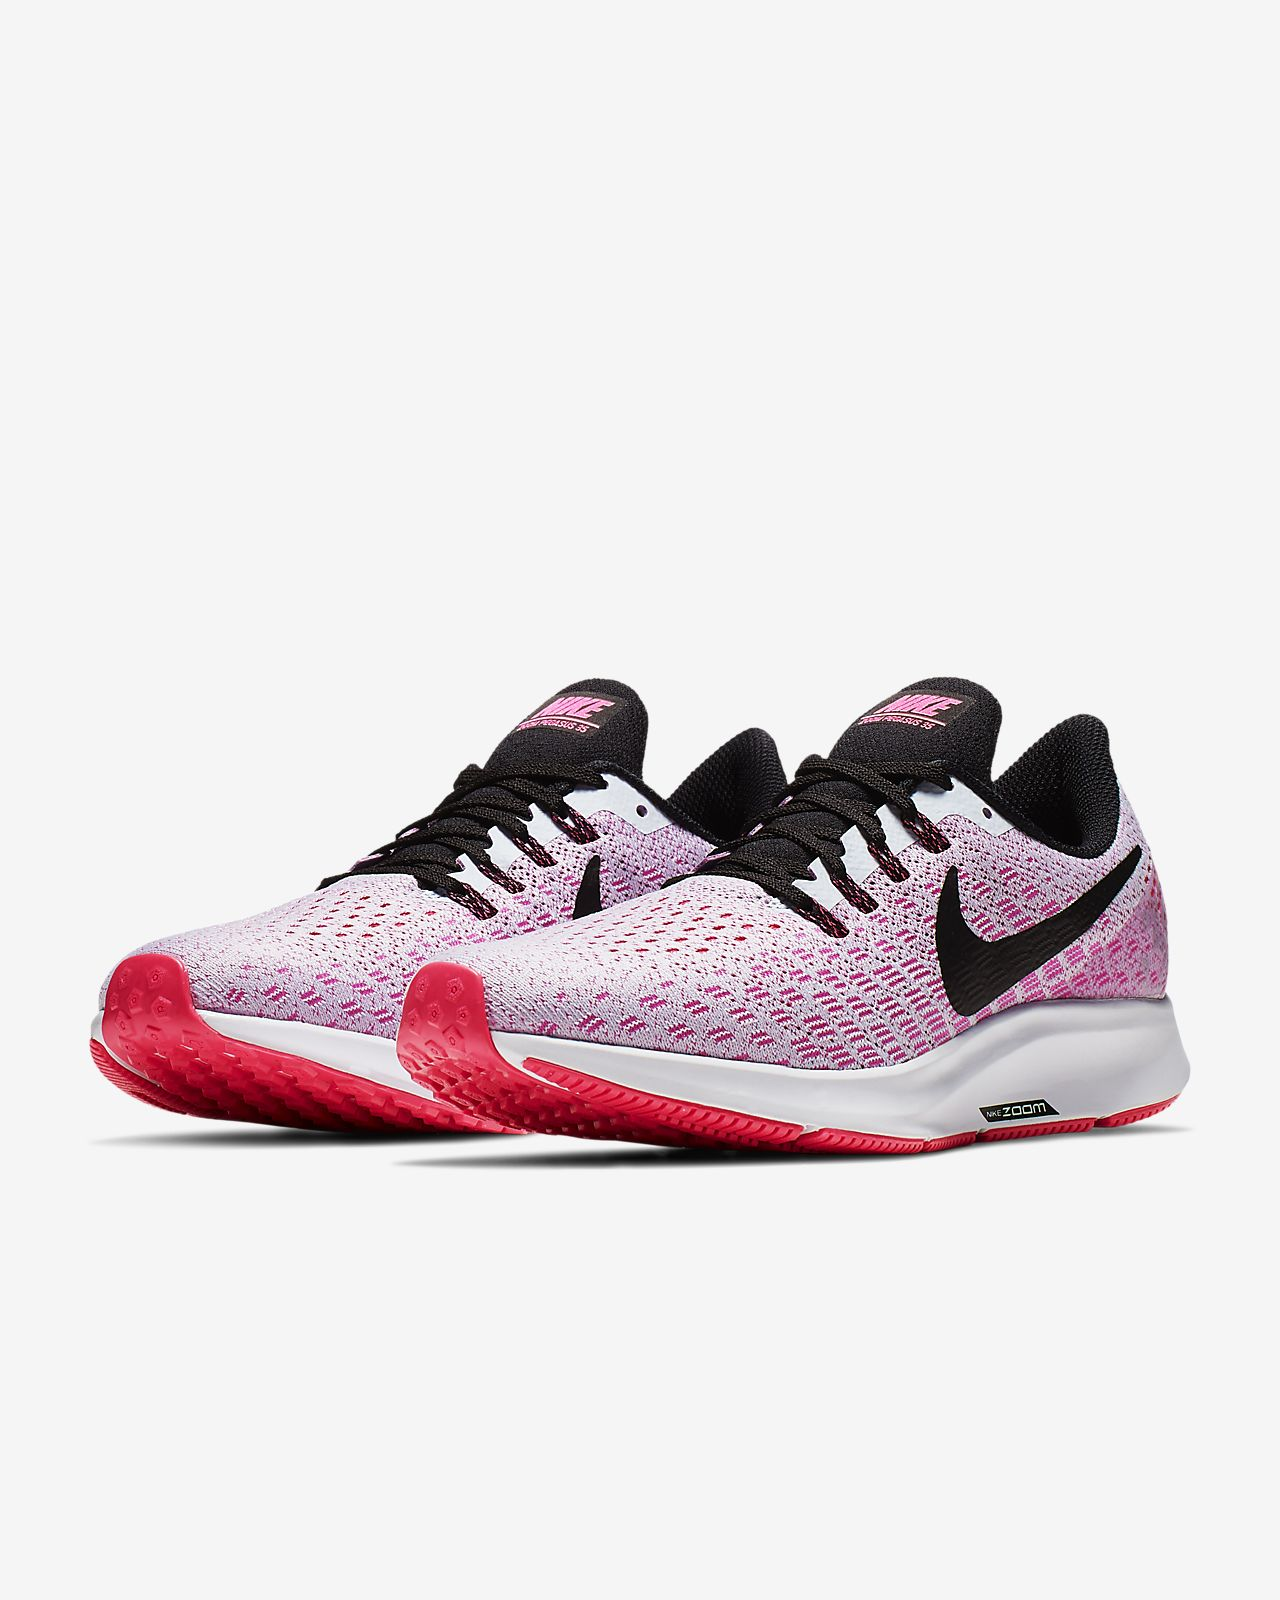 444a9c35afbe Nike Air Zoom Pegasus 35 Women s Running Shoe. Nike.com